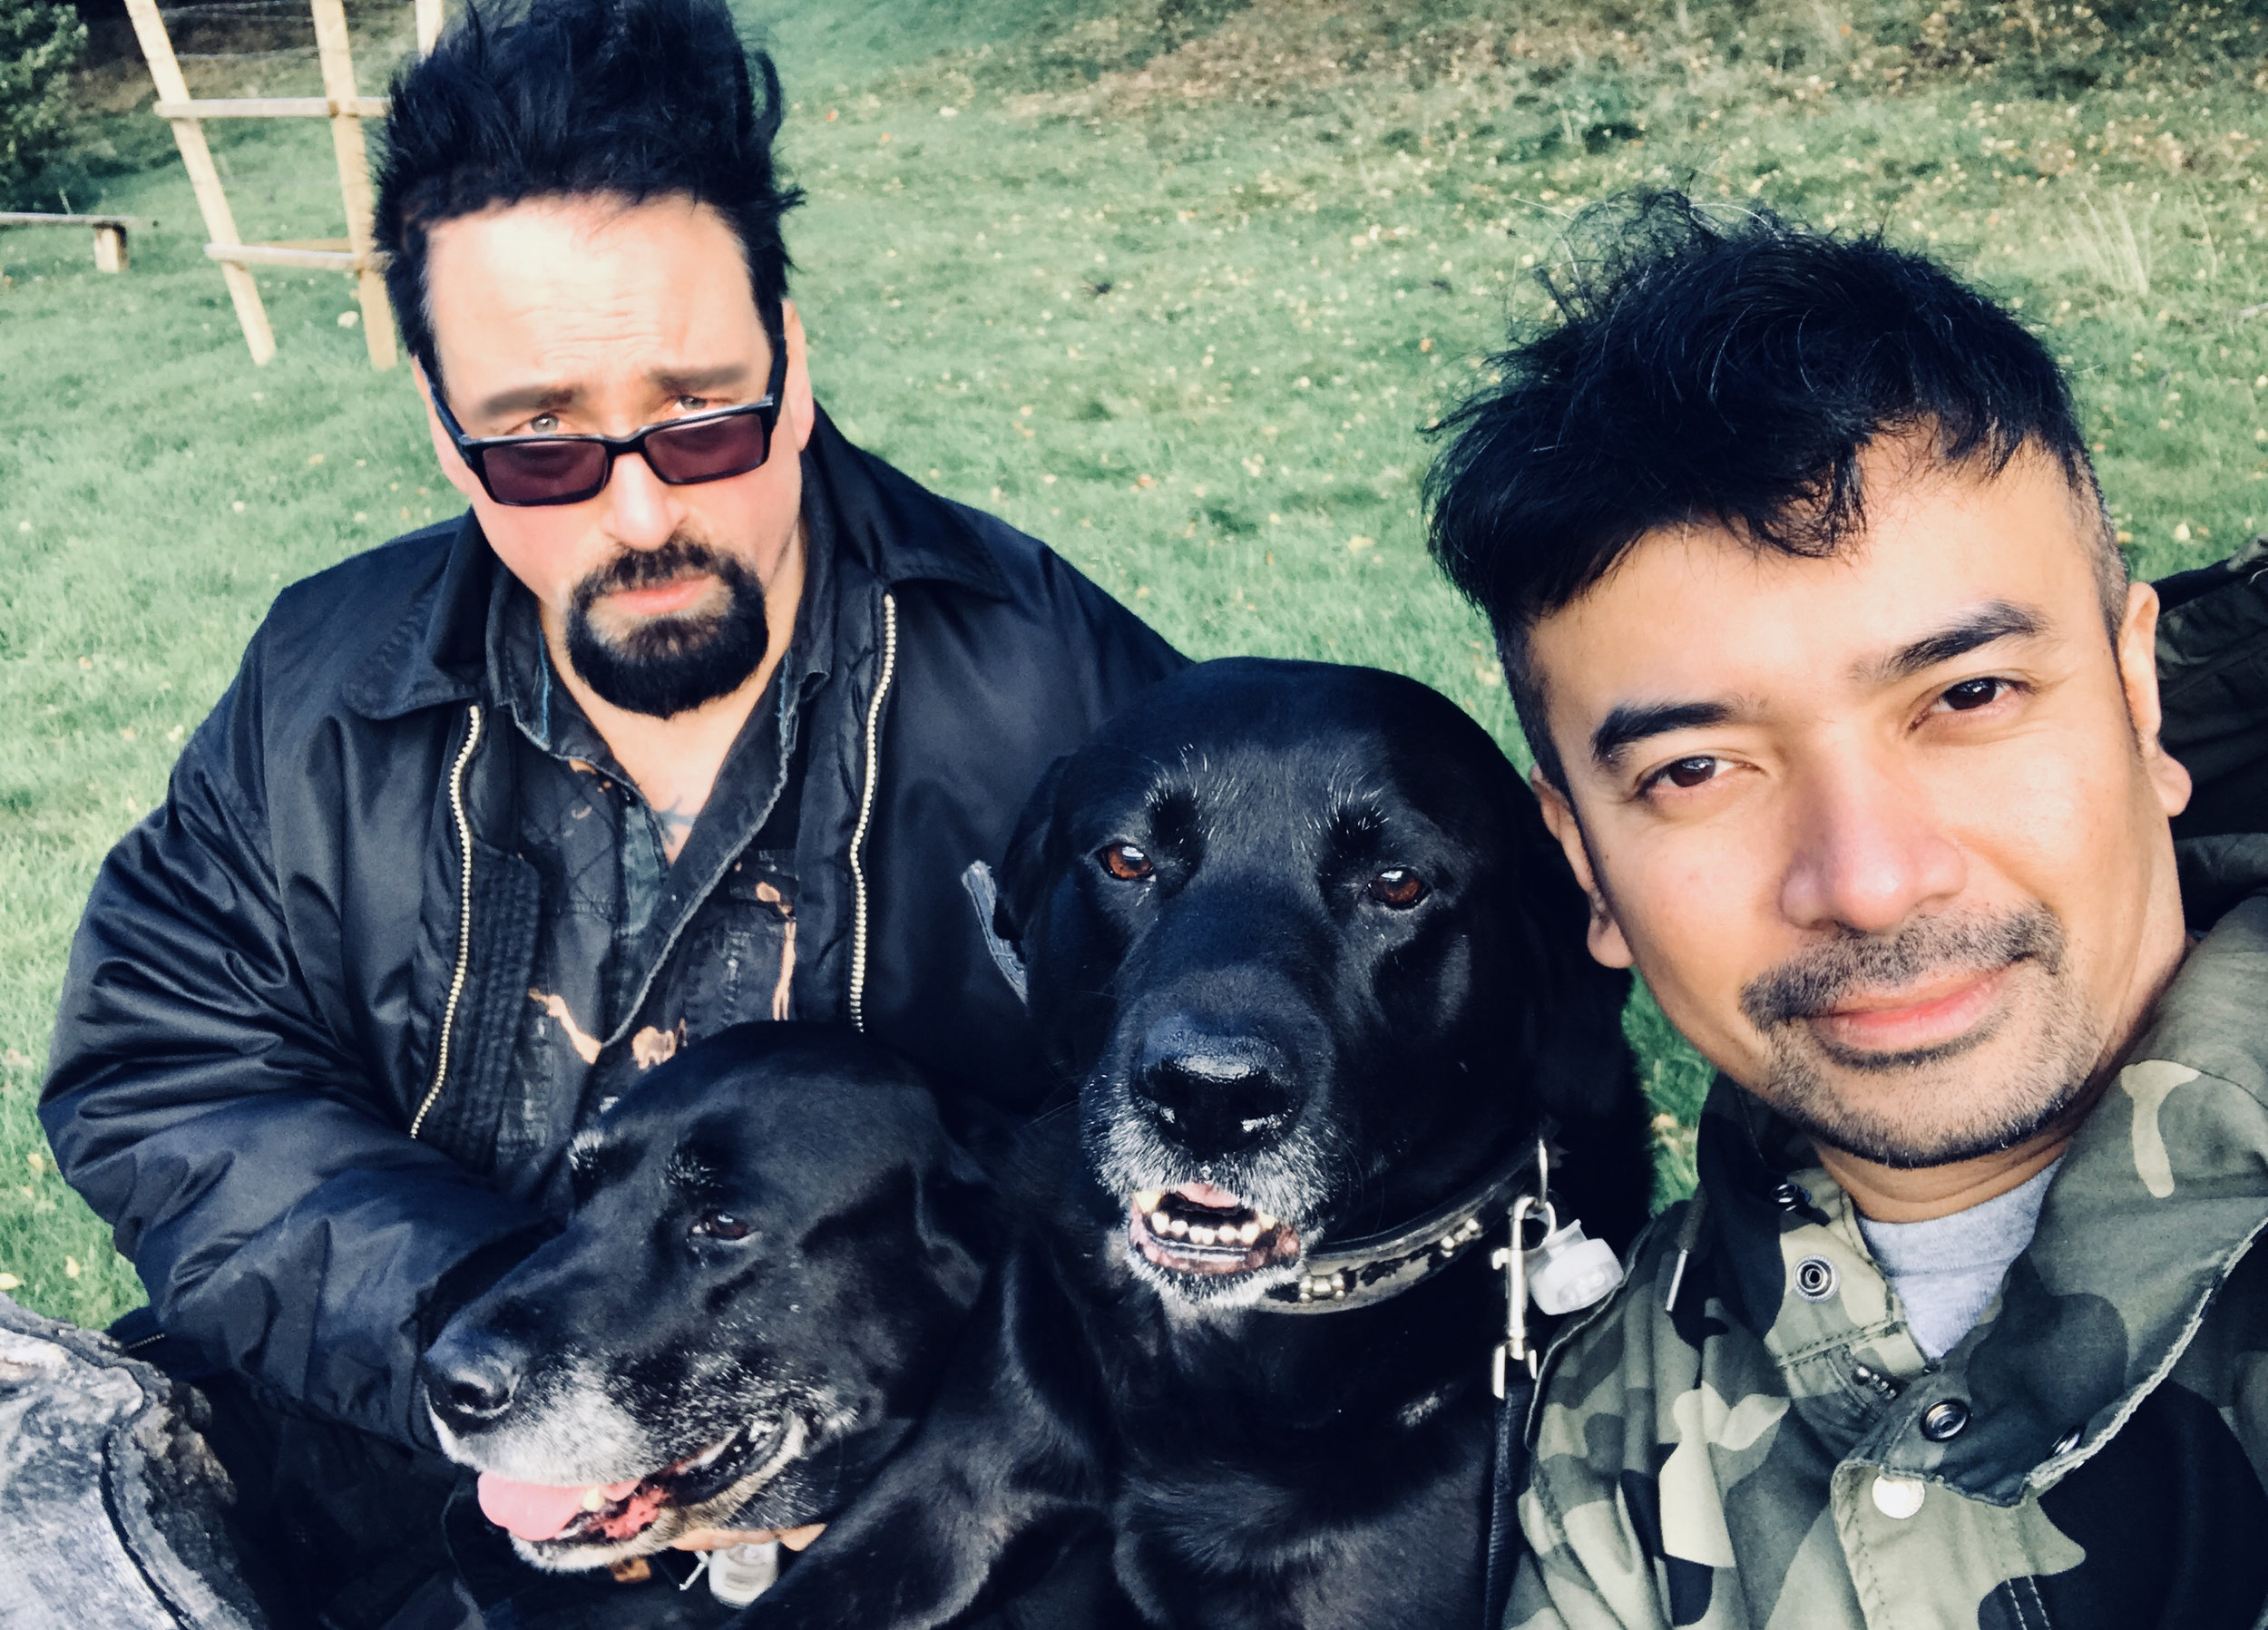 VIN + OMI with their dogs Drake + Odin